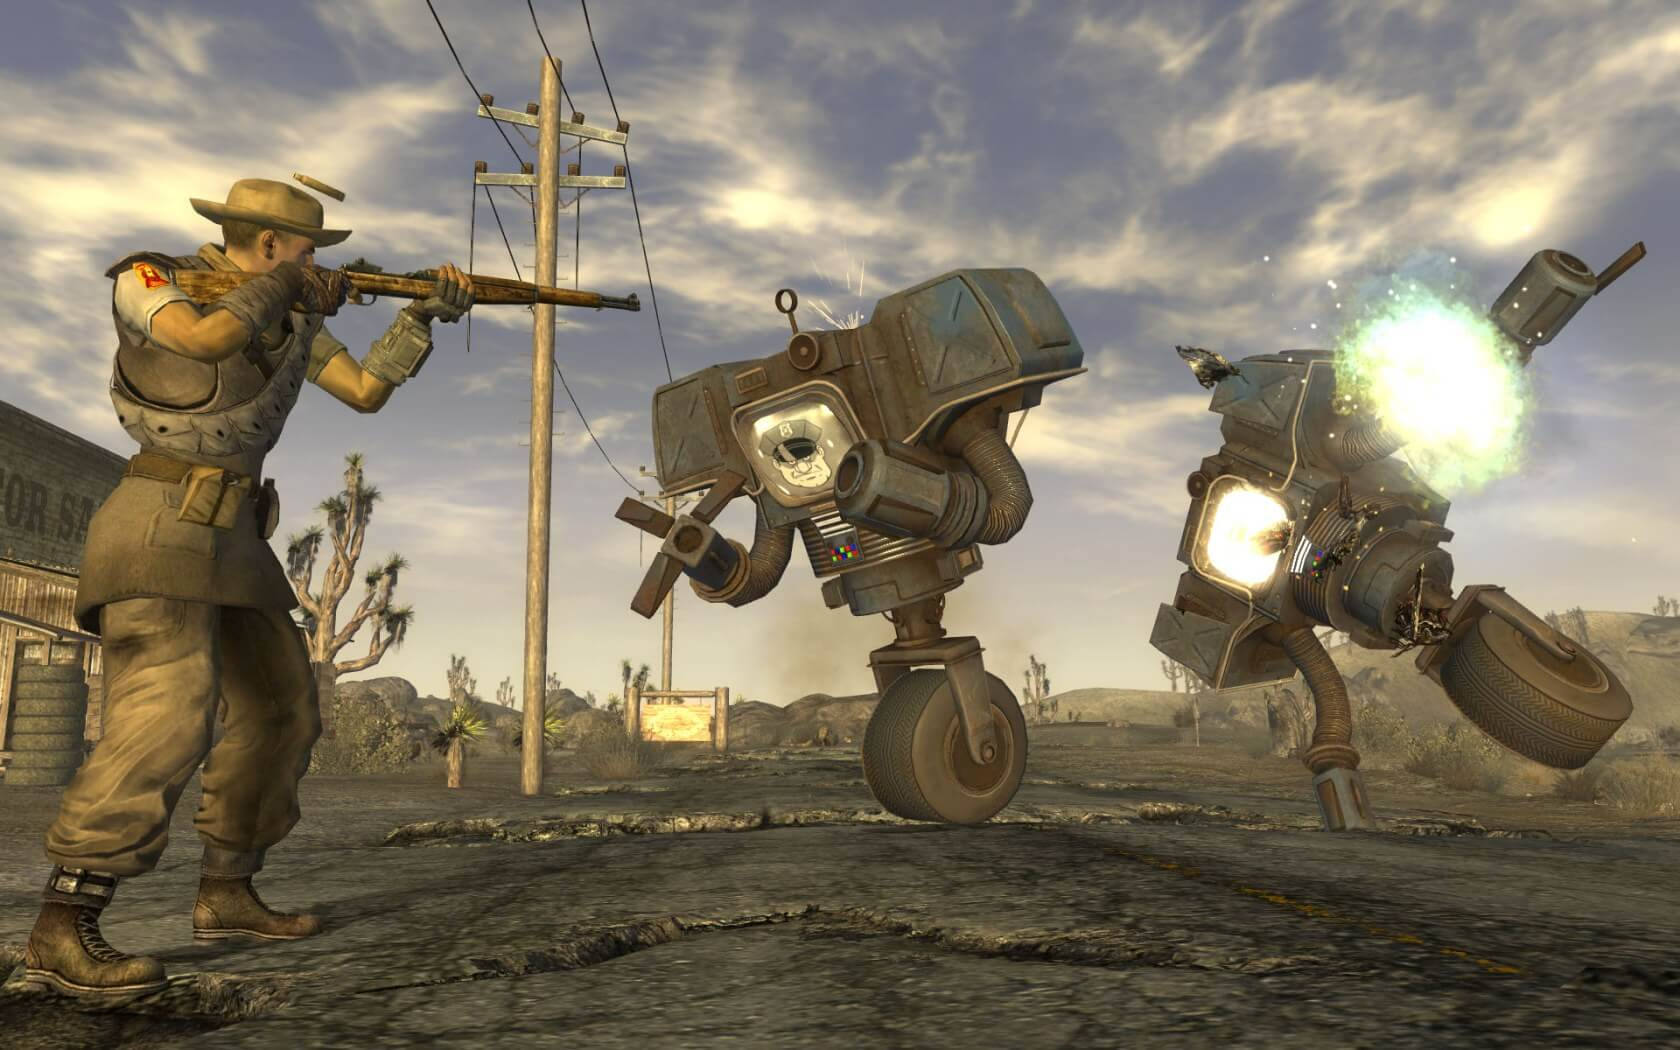 Microsoft Rumored to Buy Fallout: New Vegas Developer Obsidian